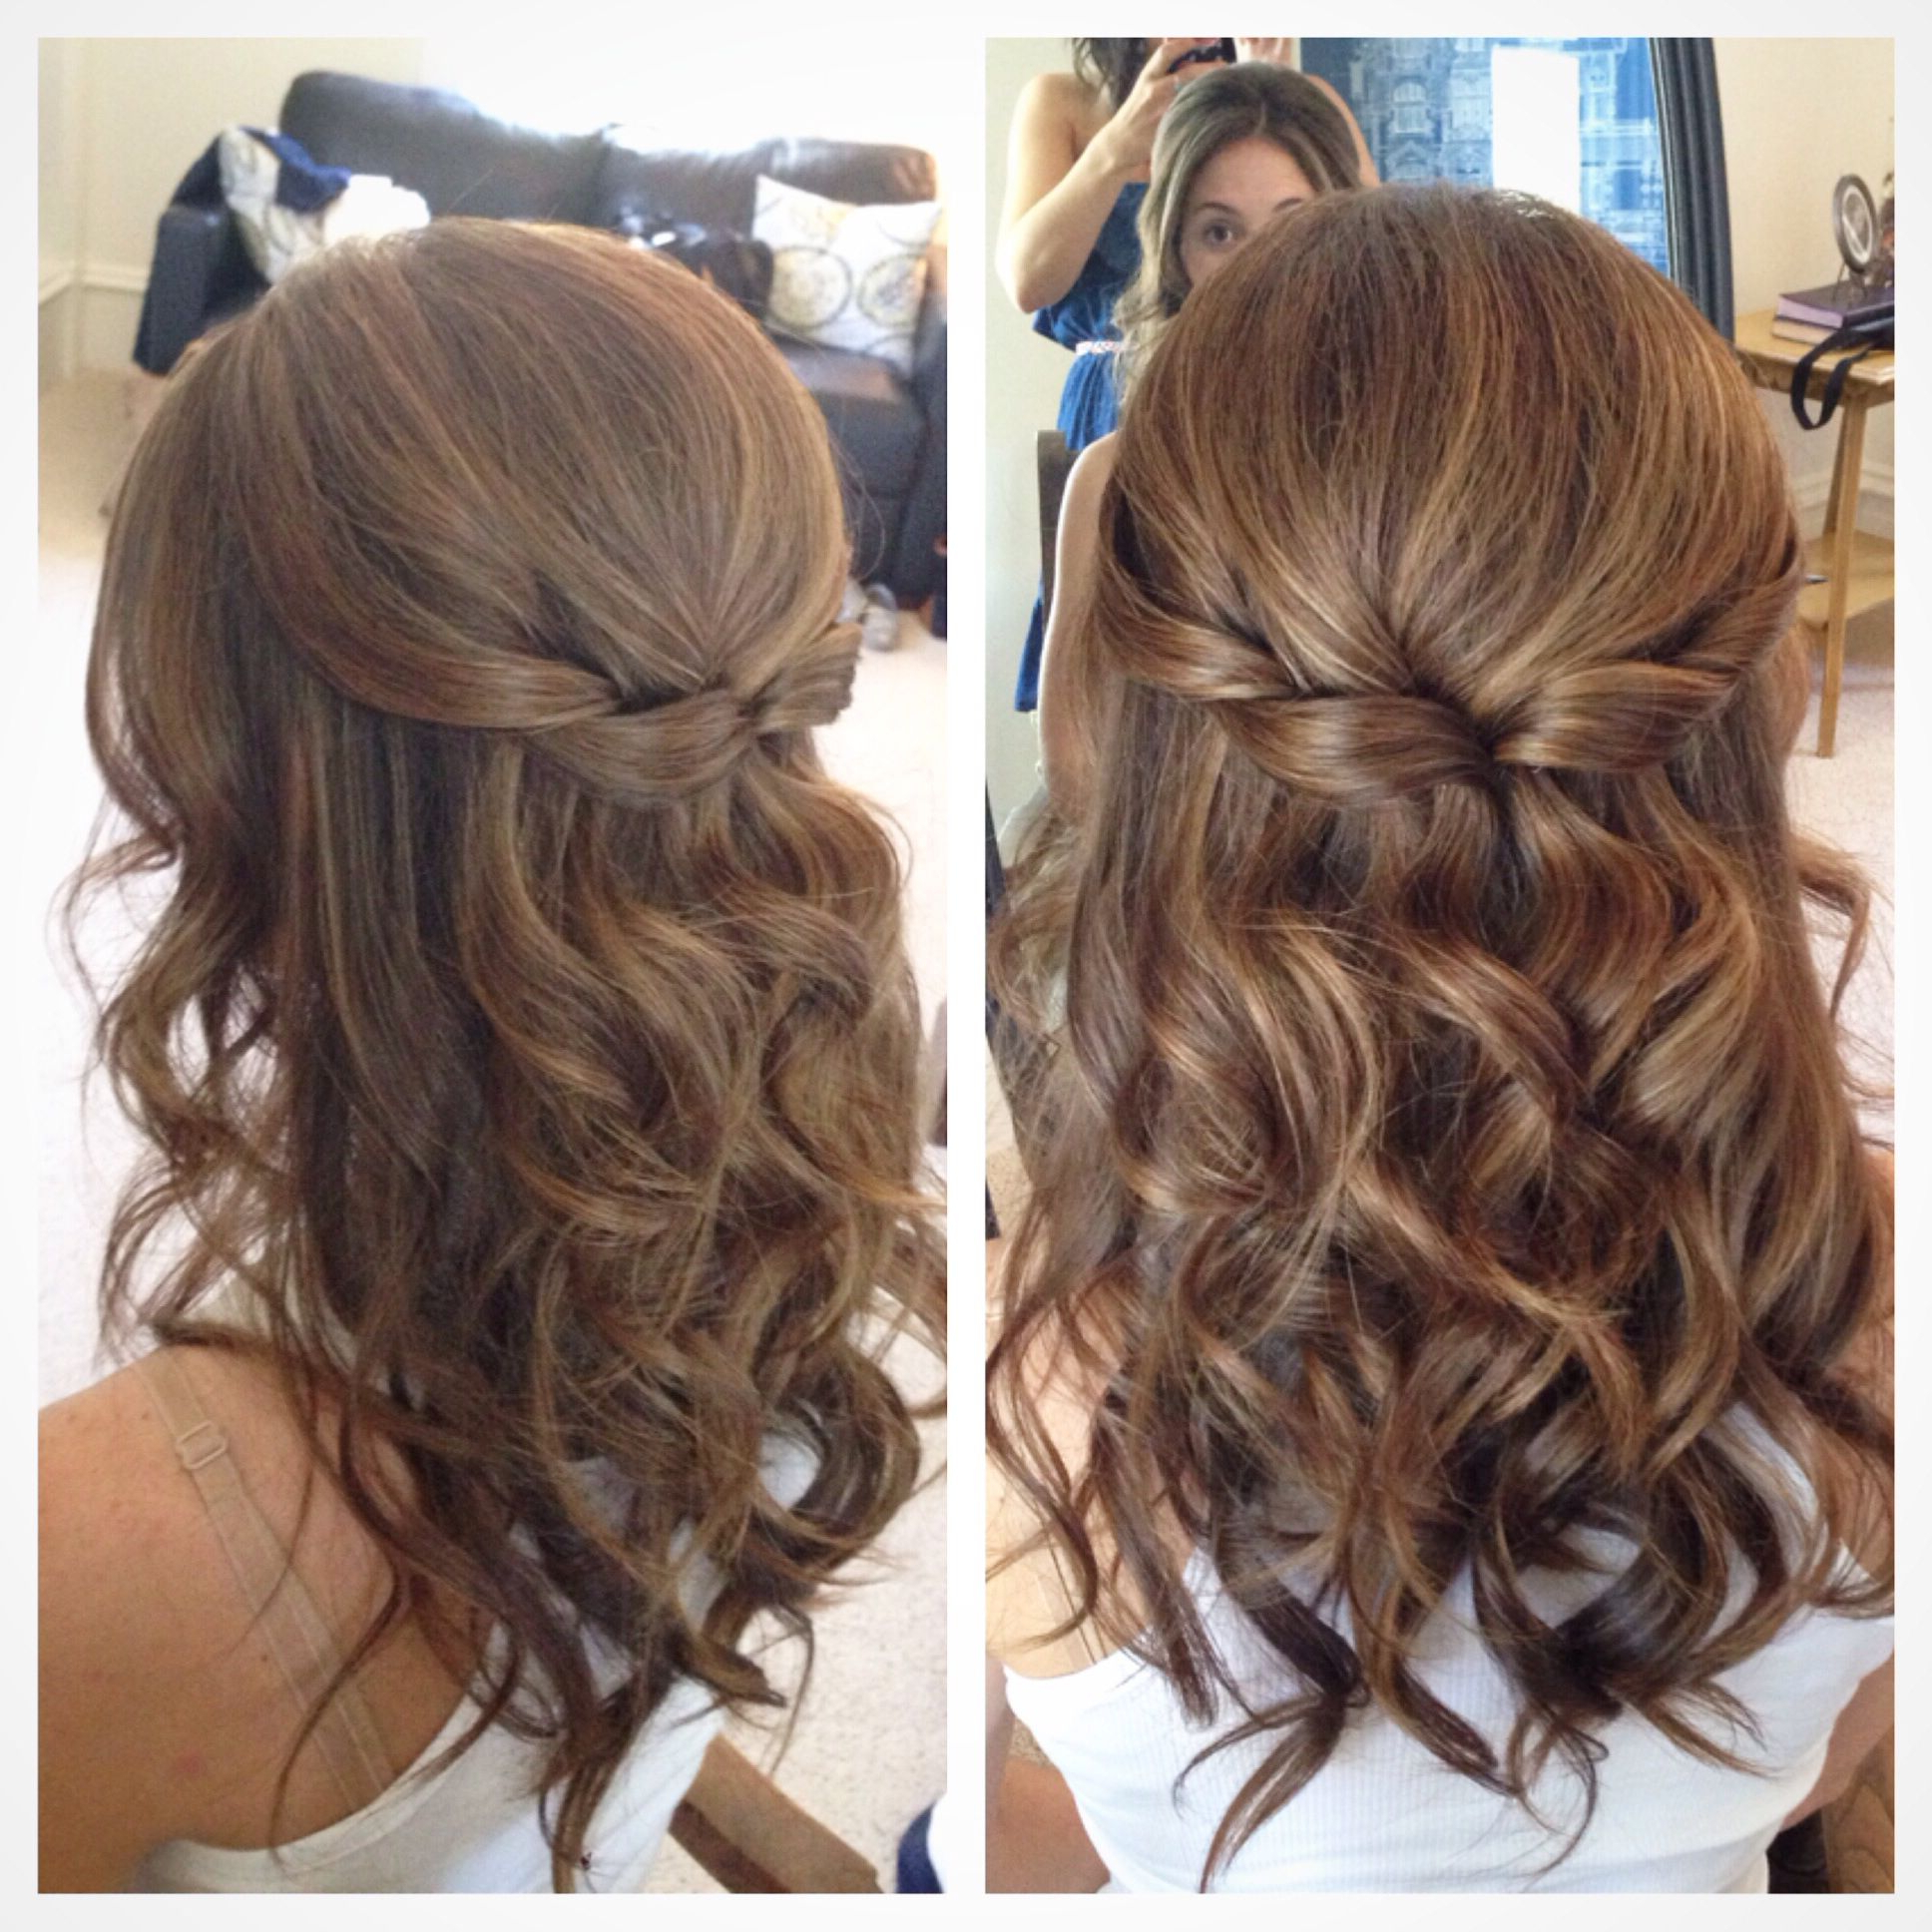 Prom Hair (View 14 of 20)